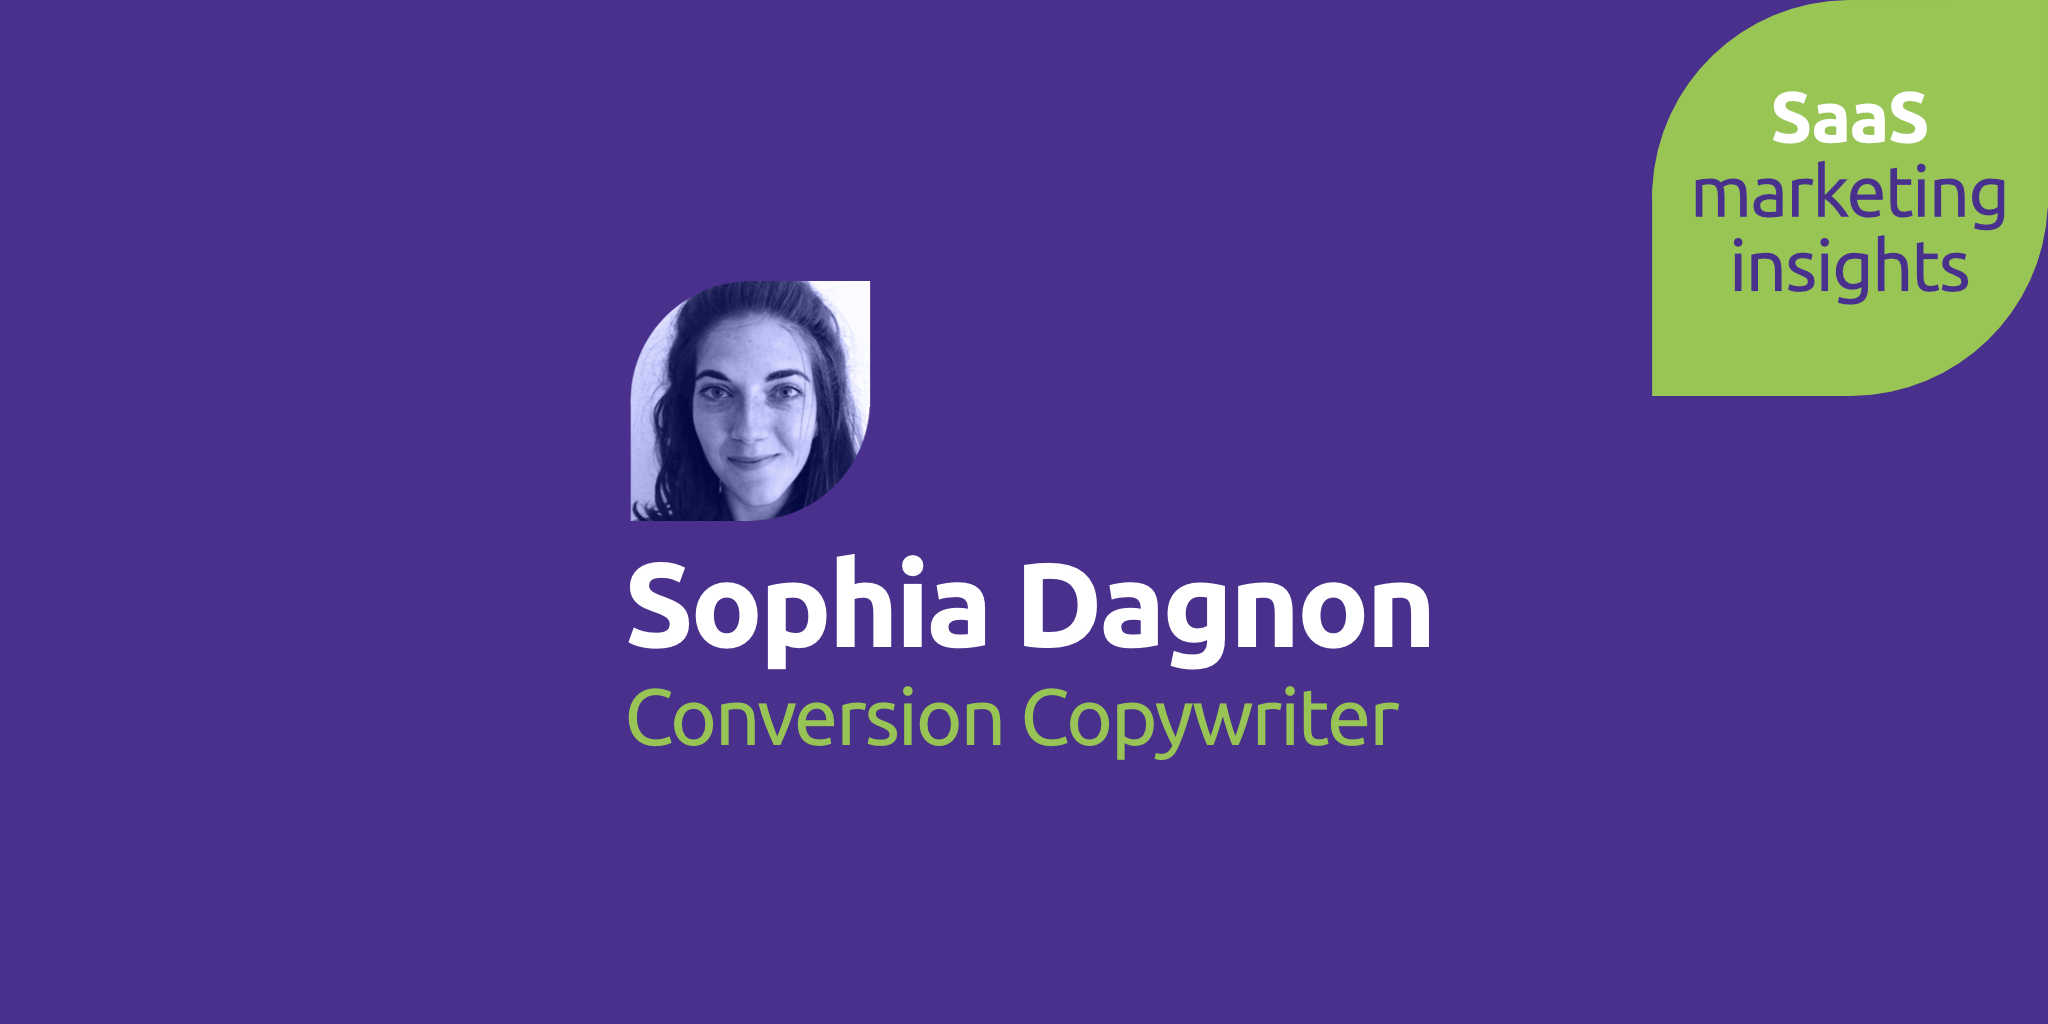 Sophia Dagnon, Conversion Copywriter